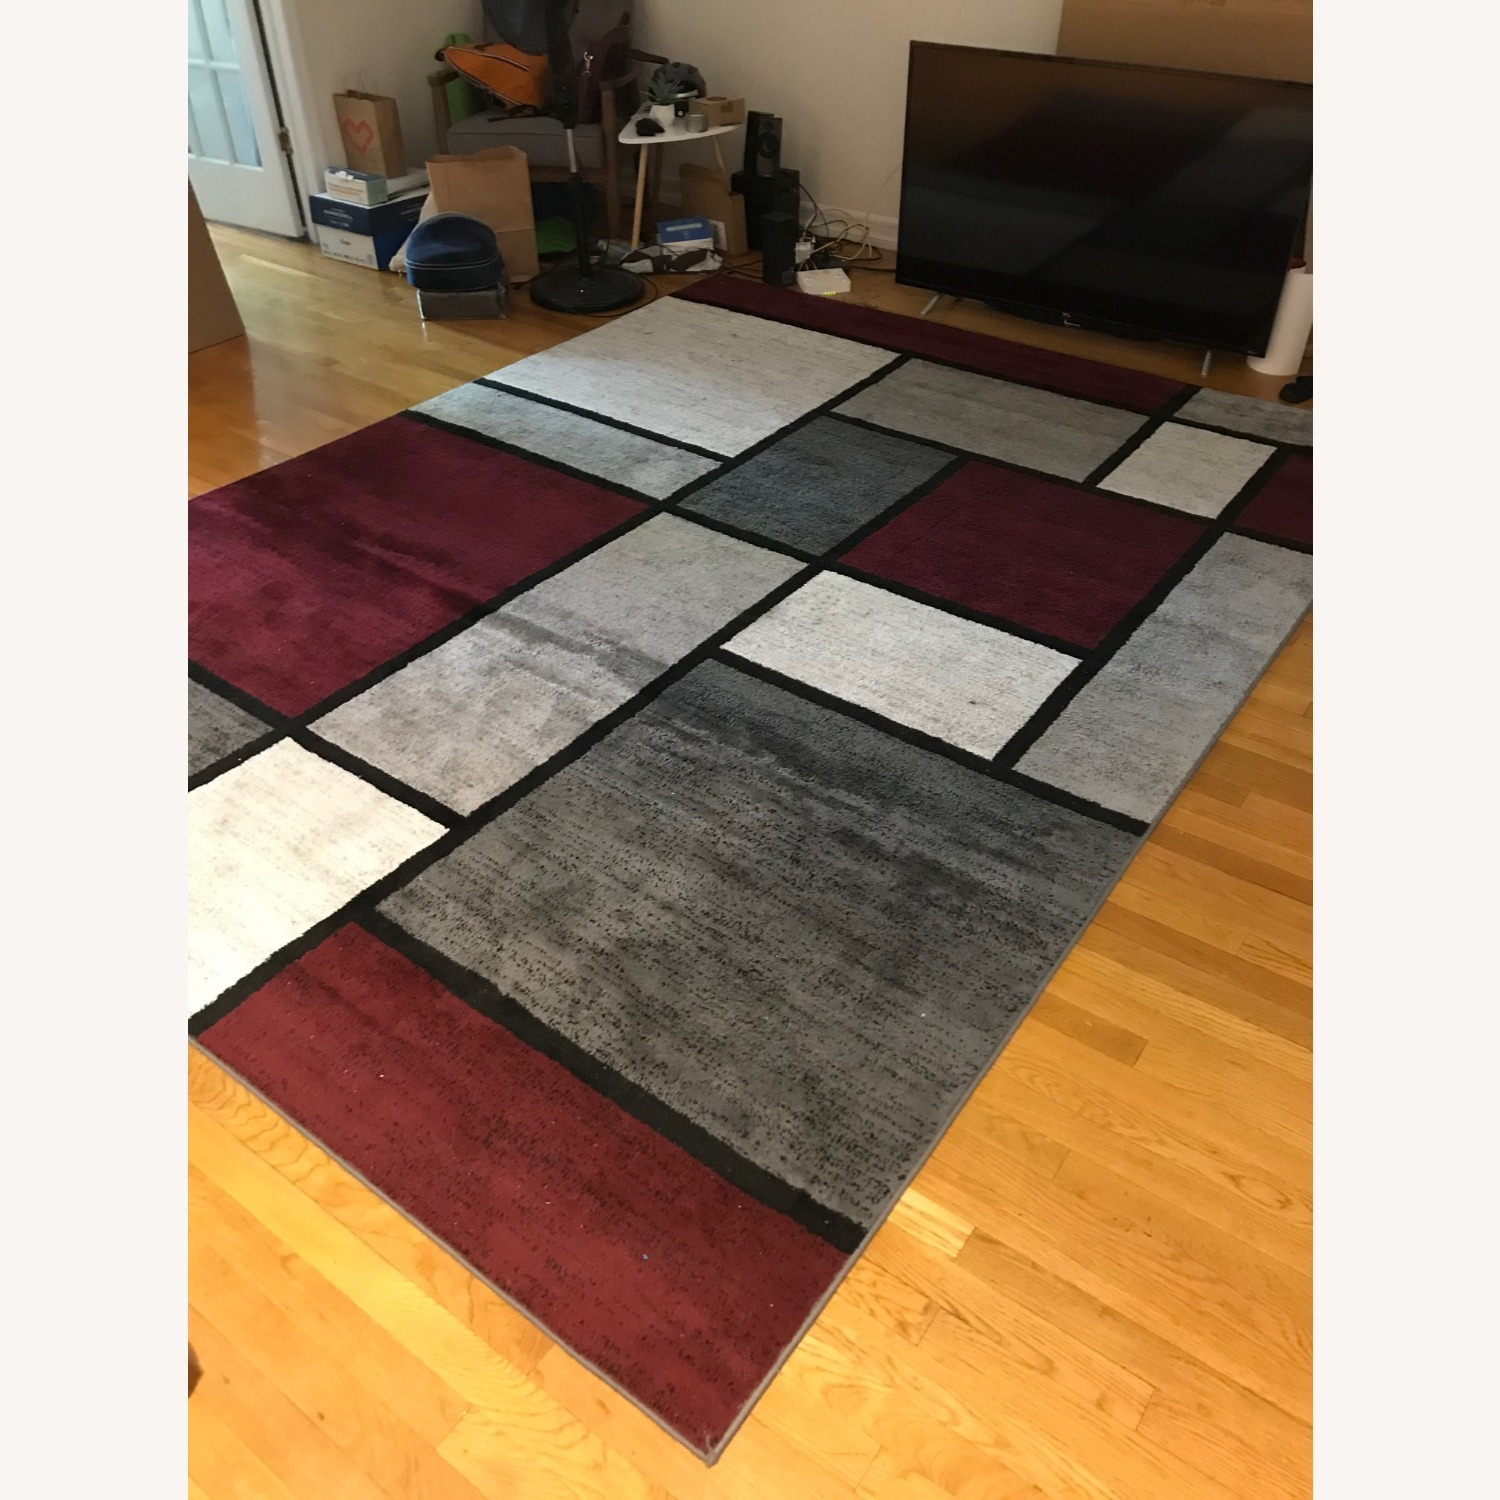 8' x 10' Red White and Grey Area Rug w Rug Pad - image-5